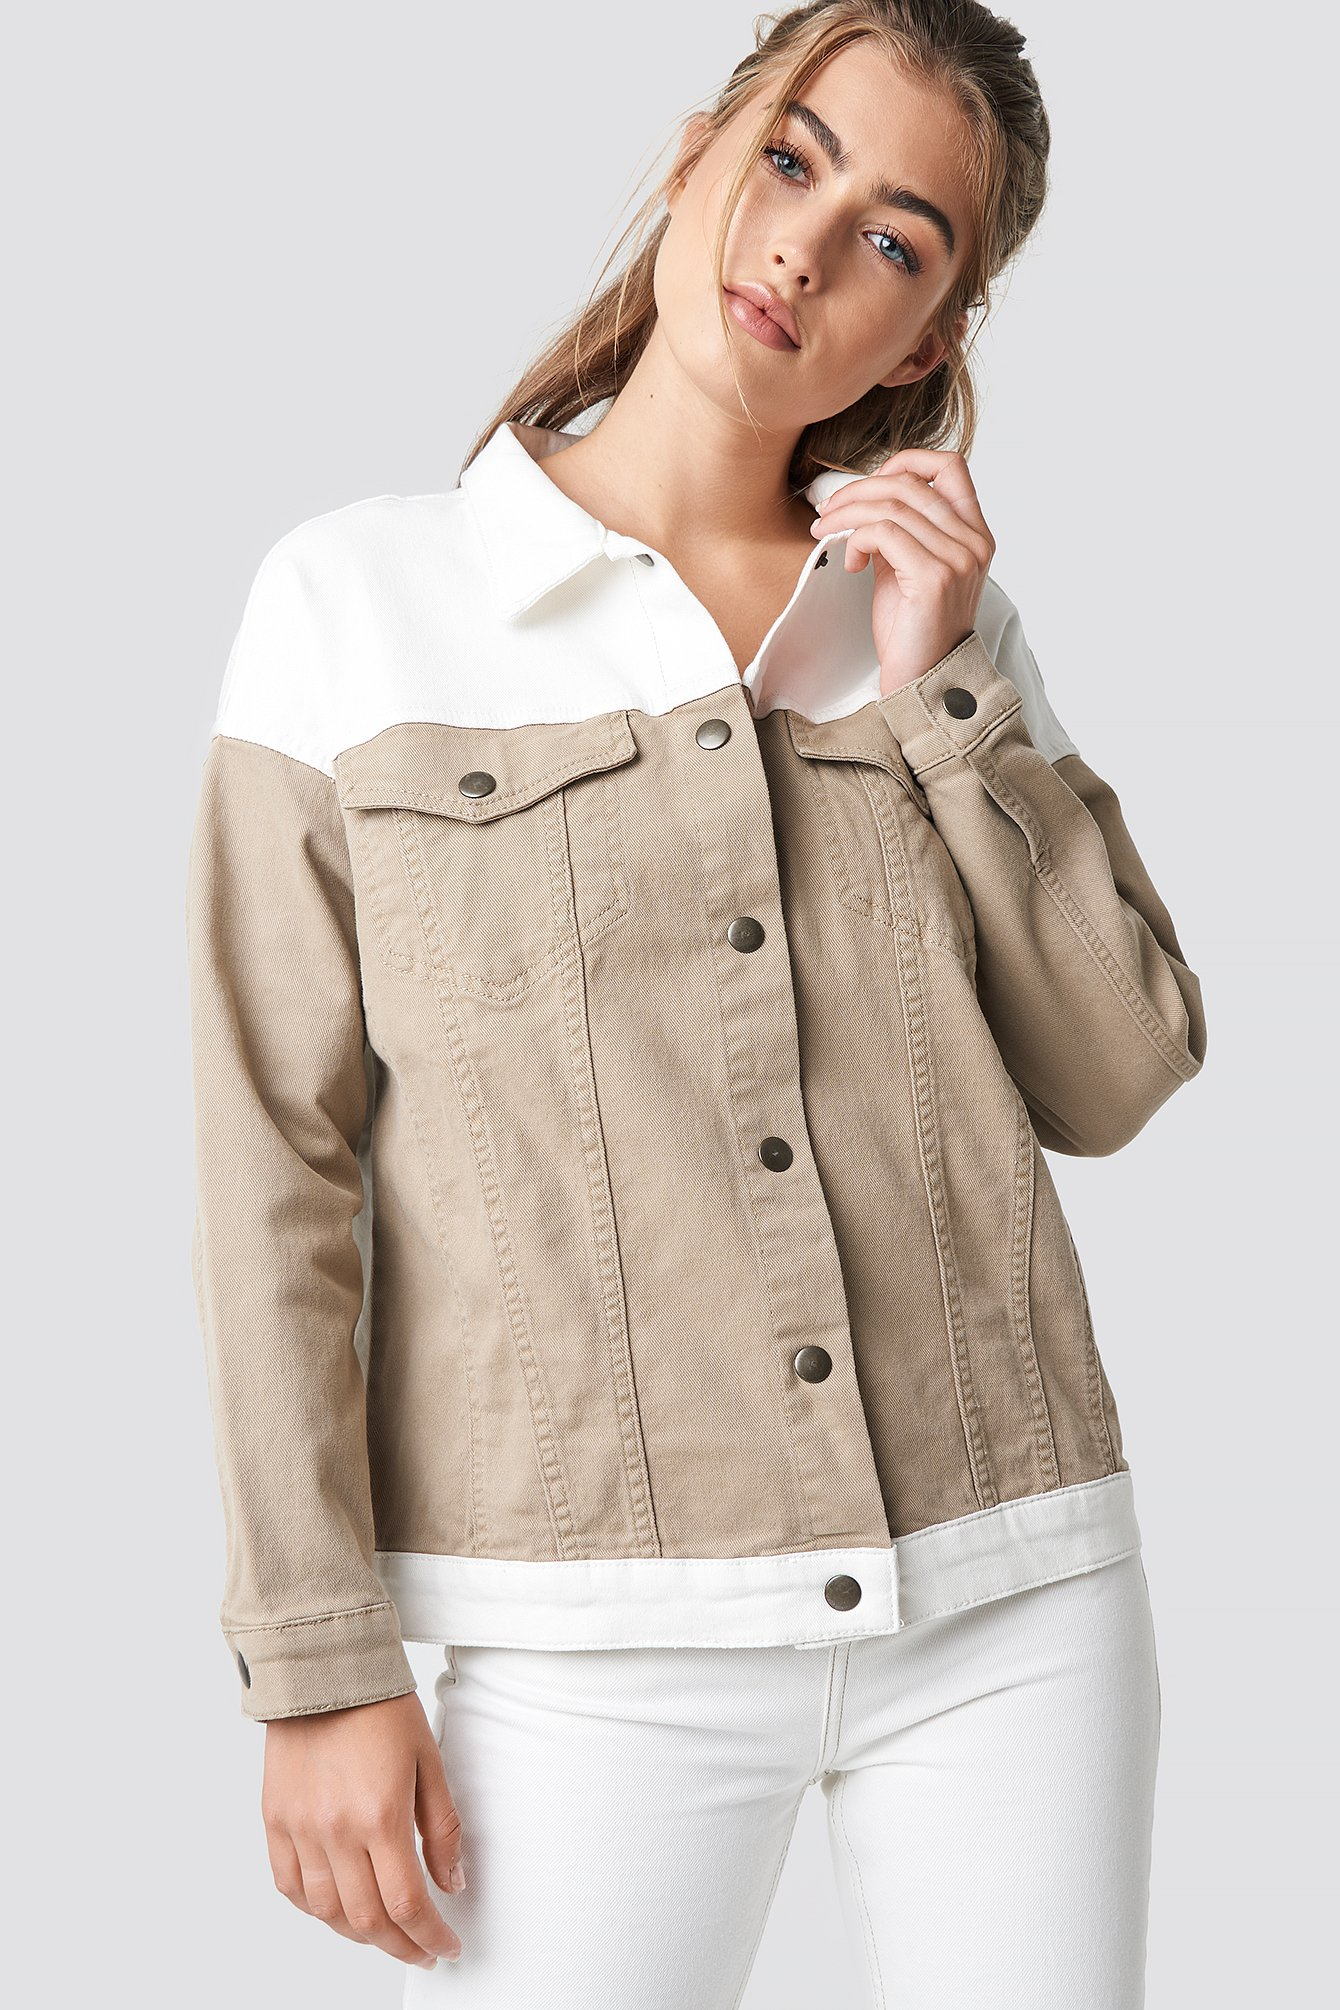 BLOCKING COLOR DENIM JACKET - BEIGE, OFFWHITE